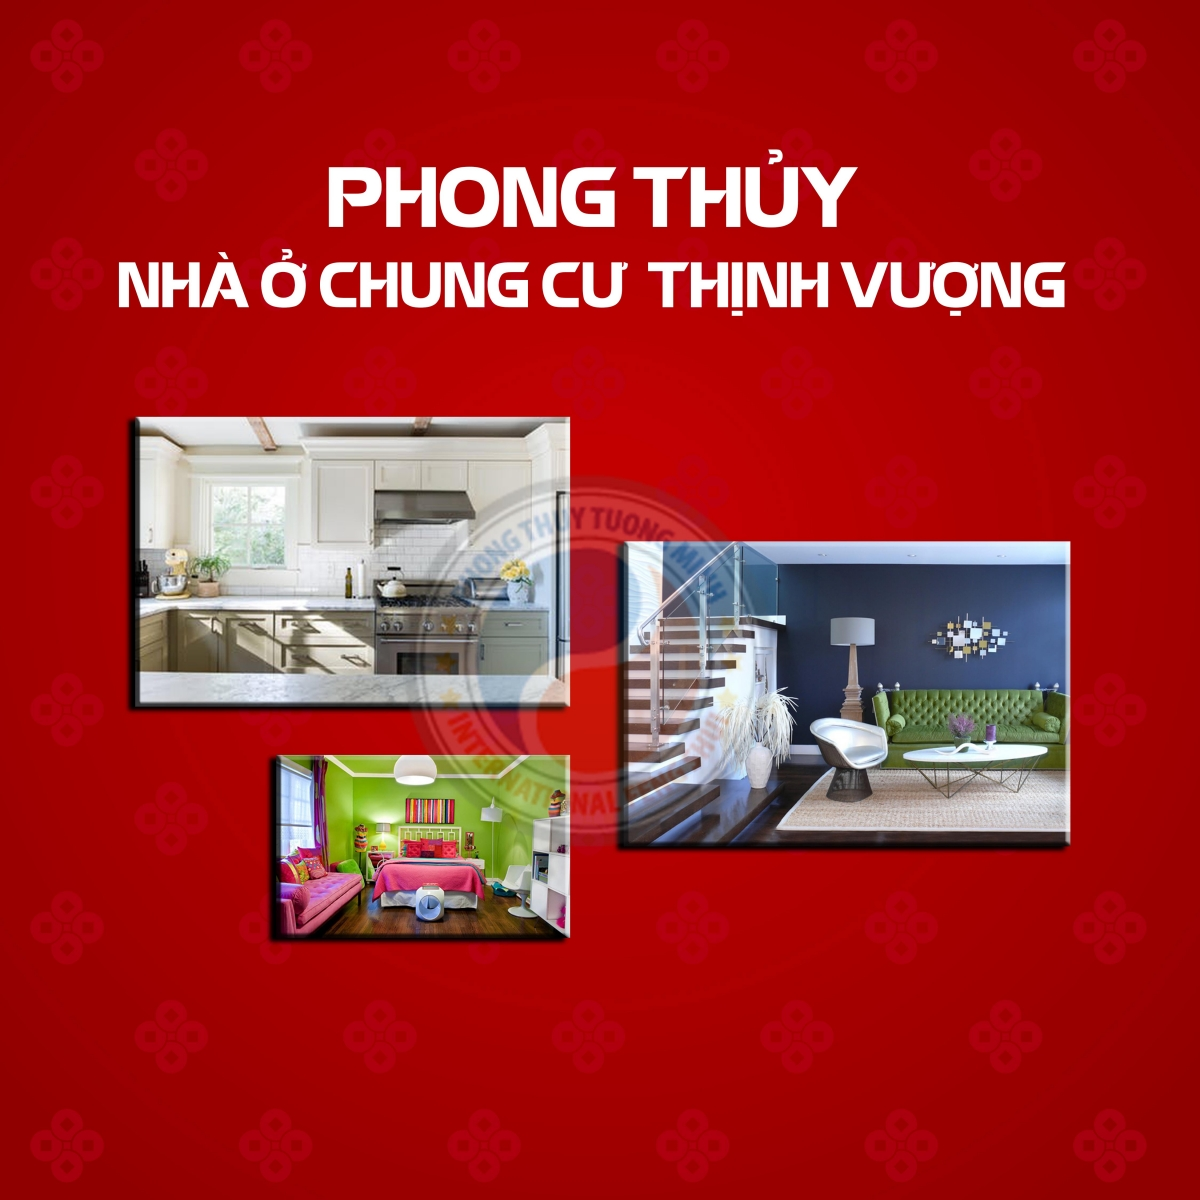 hoc-phong-thuy-can-ban-ung-dung